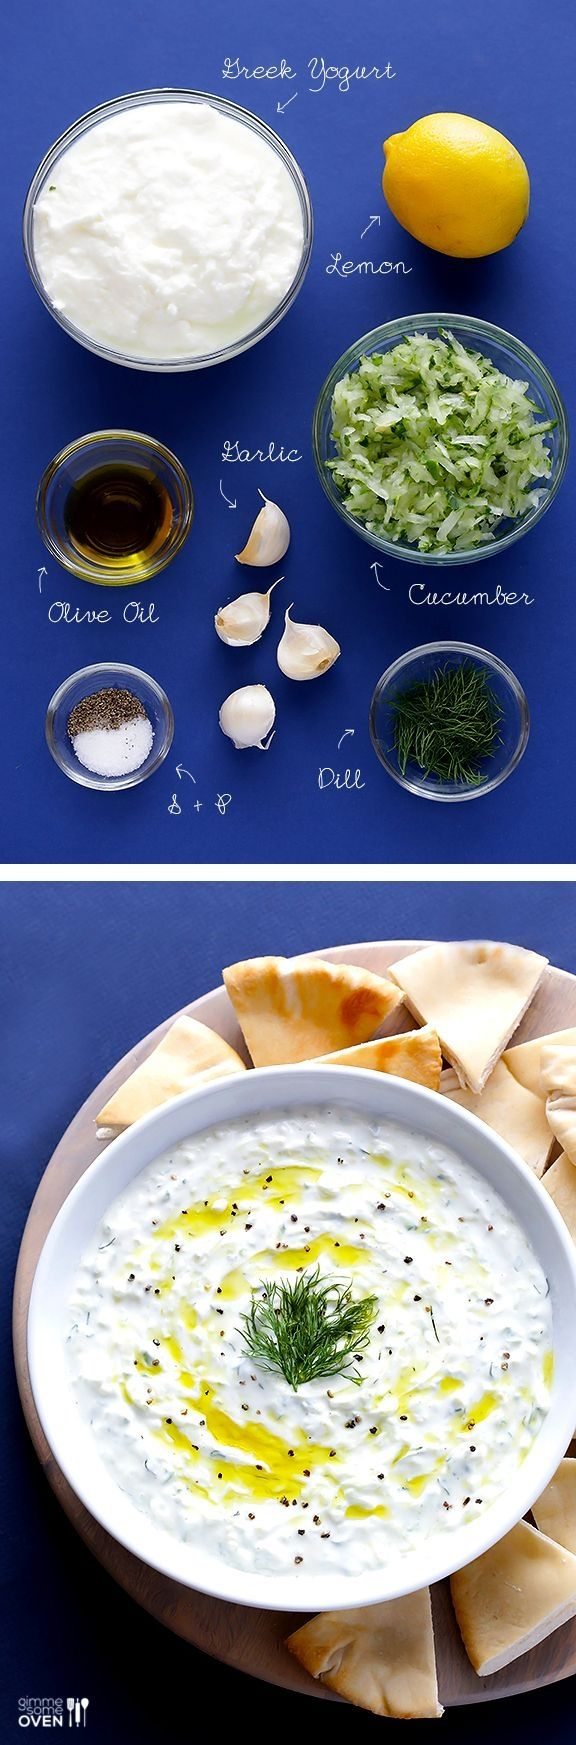 Learn how to make homemade tzatziki with this easy recipe!   gimmesomeoven.com by verna